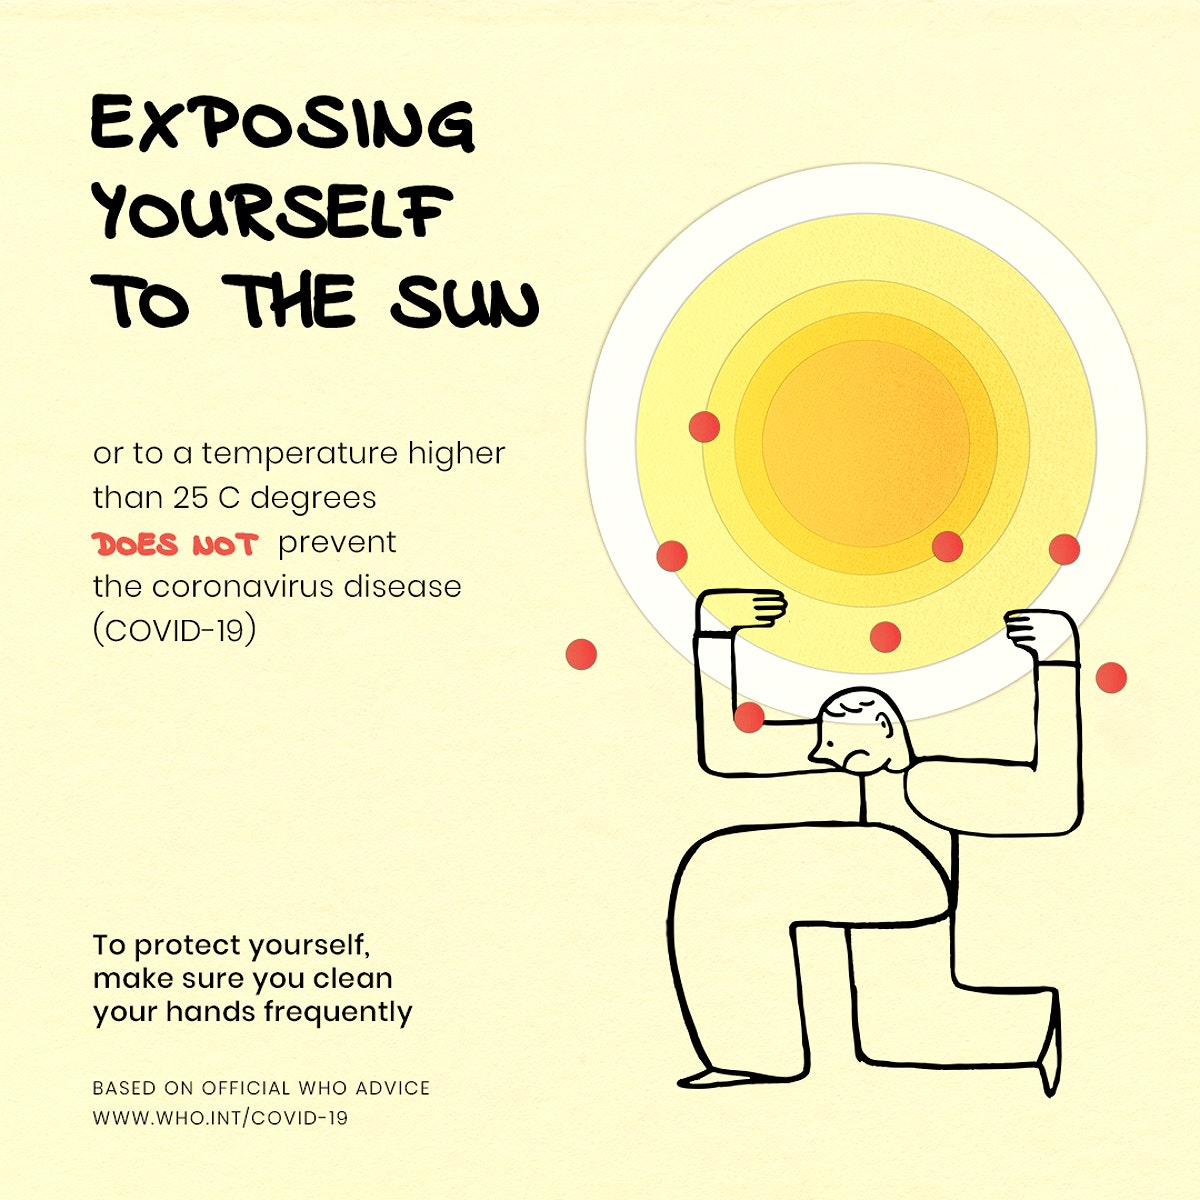 Exposing yourself to the sun does not prevent coronavirus disease template source WHO